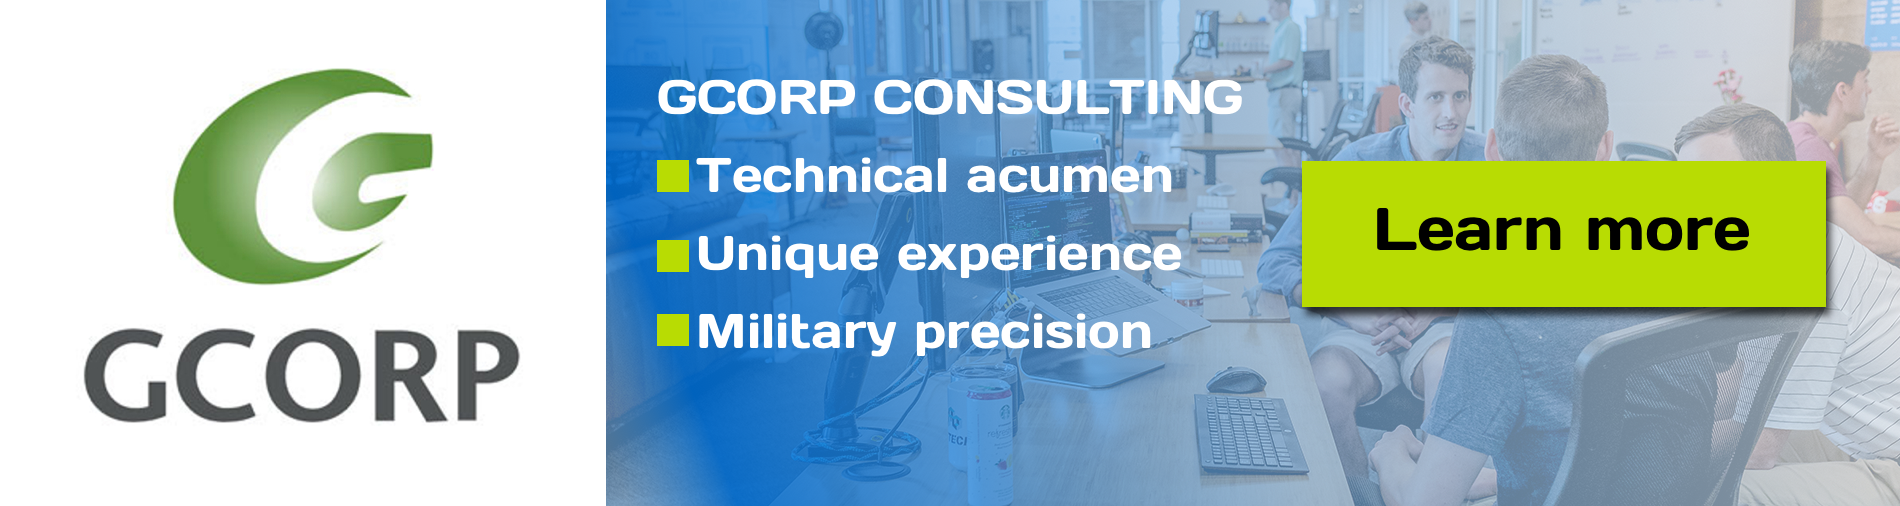 G-Corp Consulting